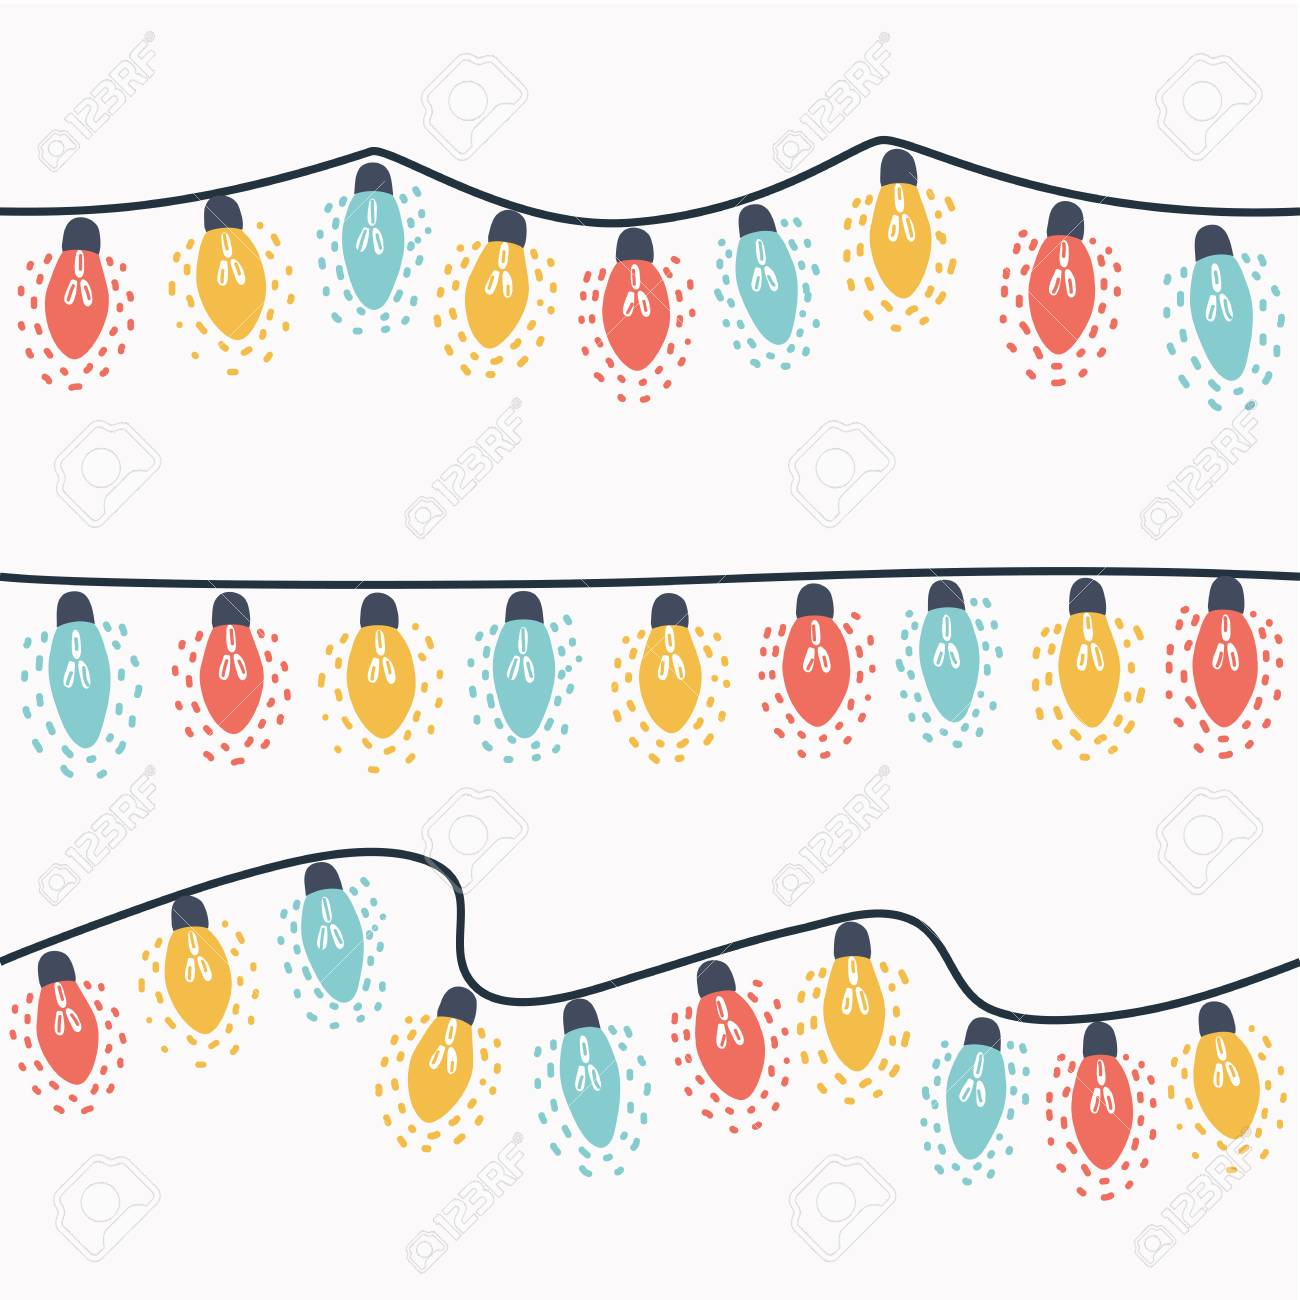 Christmas Lights Cartoon.Vector Cartoon Illustration Of Set Of Christmas Lights Garland